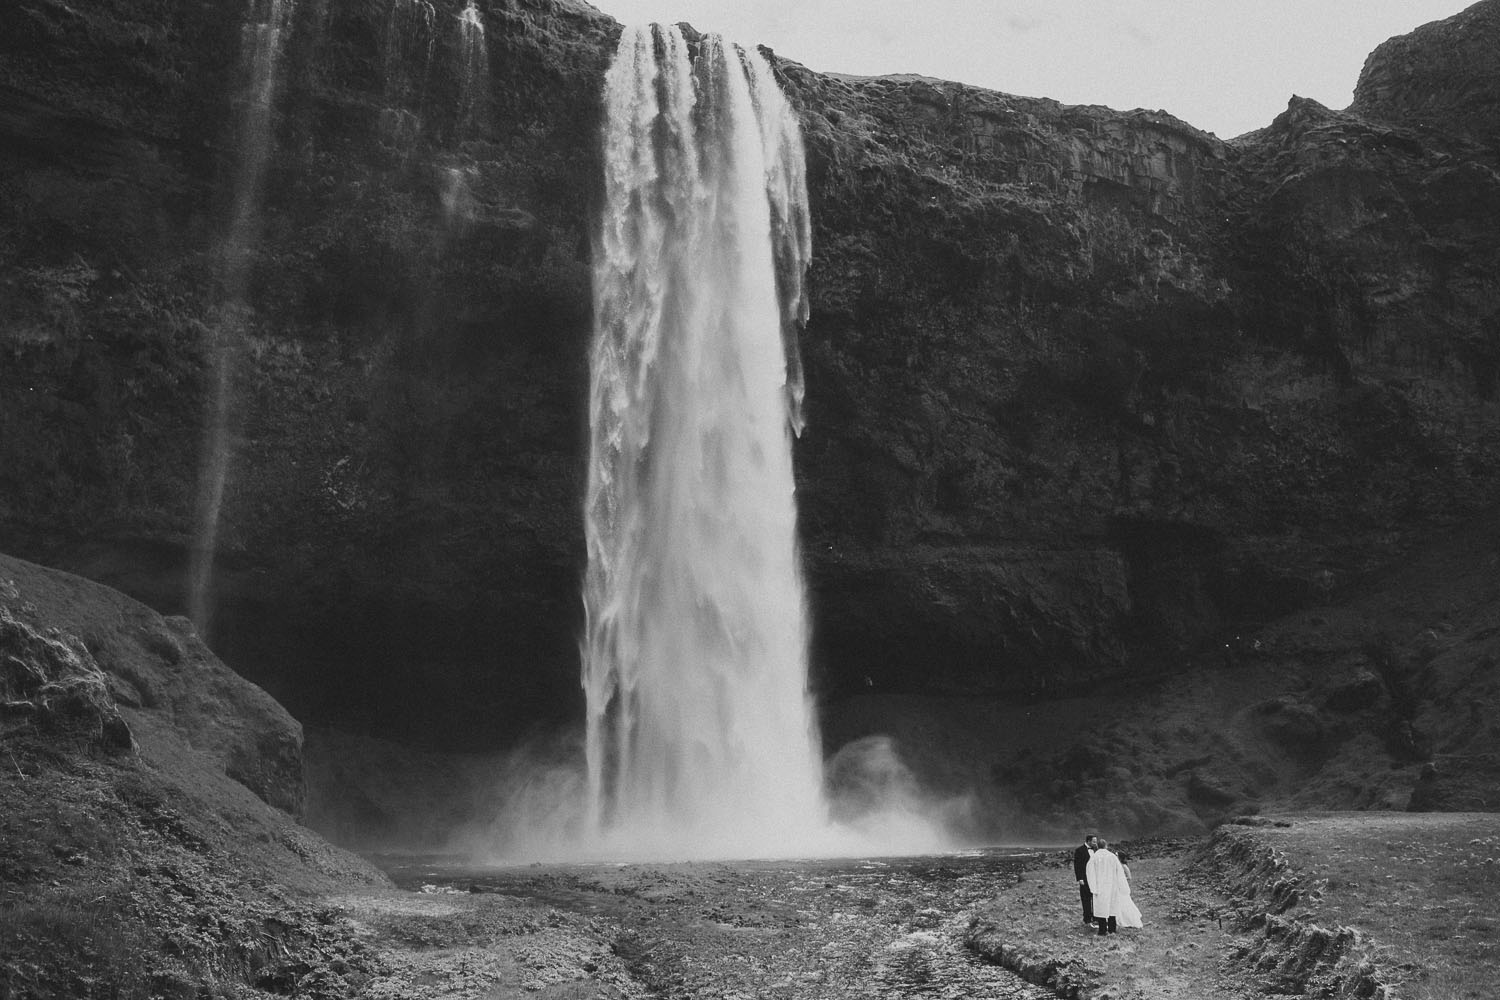 iceland_reykjavik_vik_wedding_photographer-45